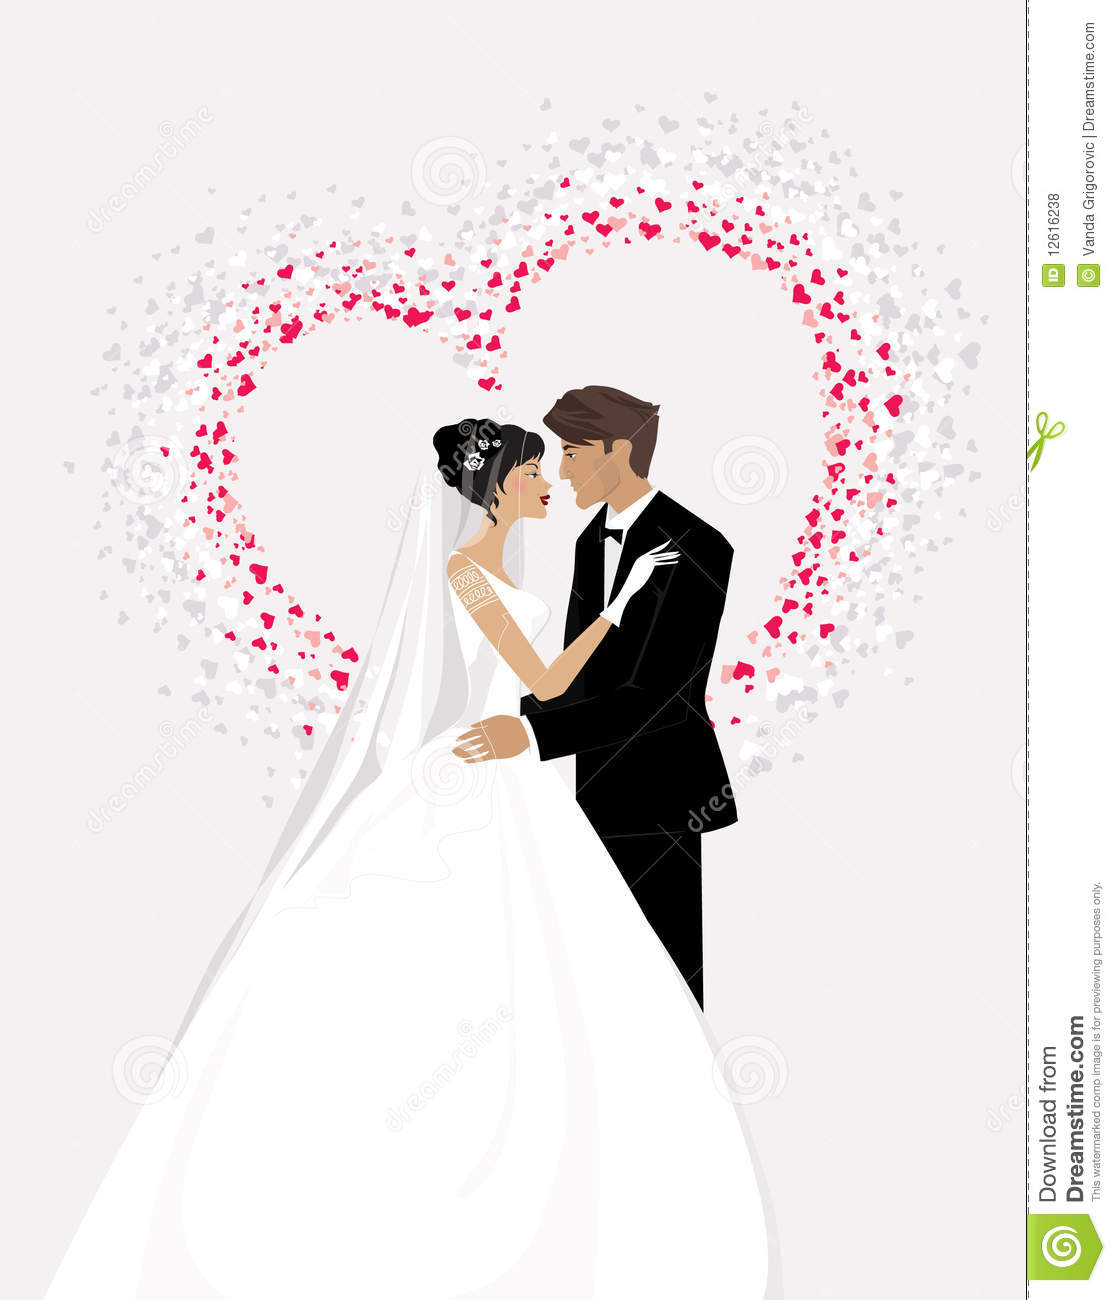 Bride and Groom stock vector. Illustration of bridal - 12616238